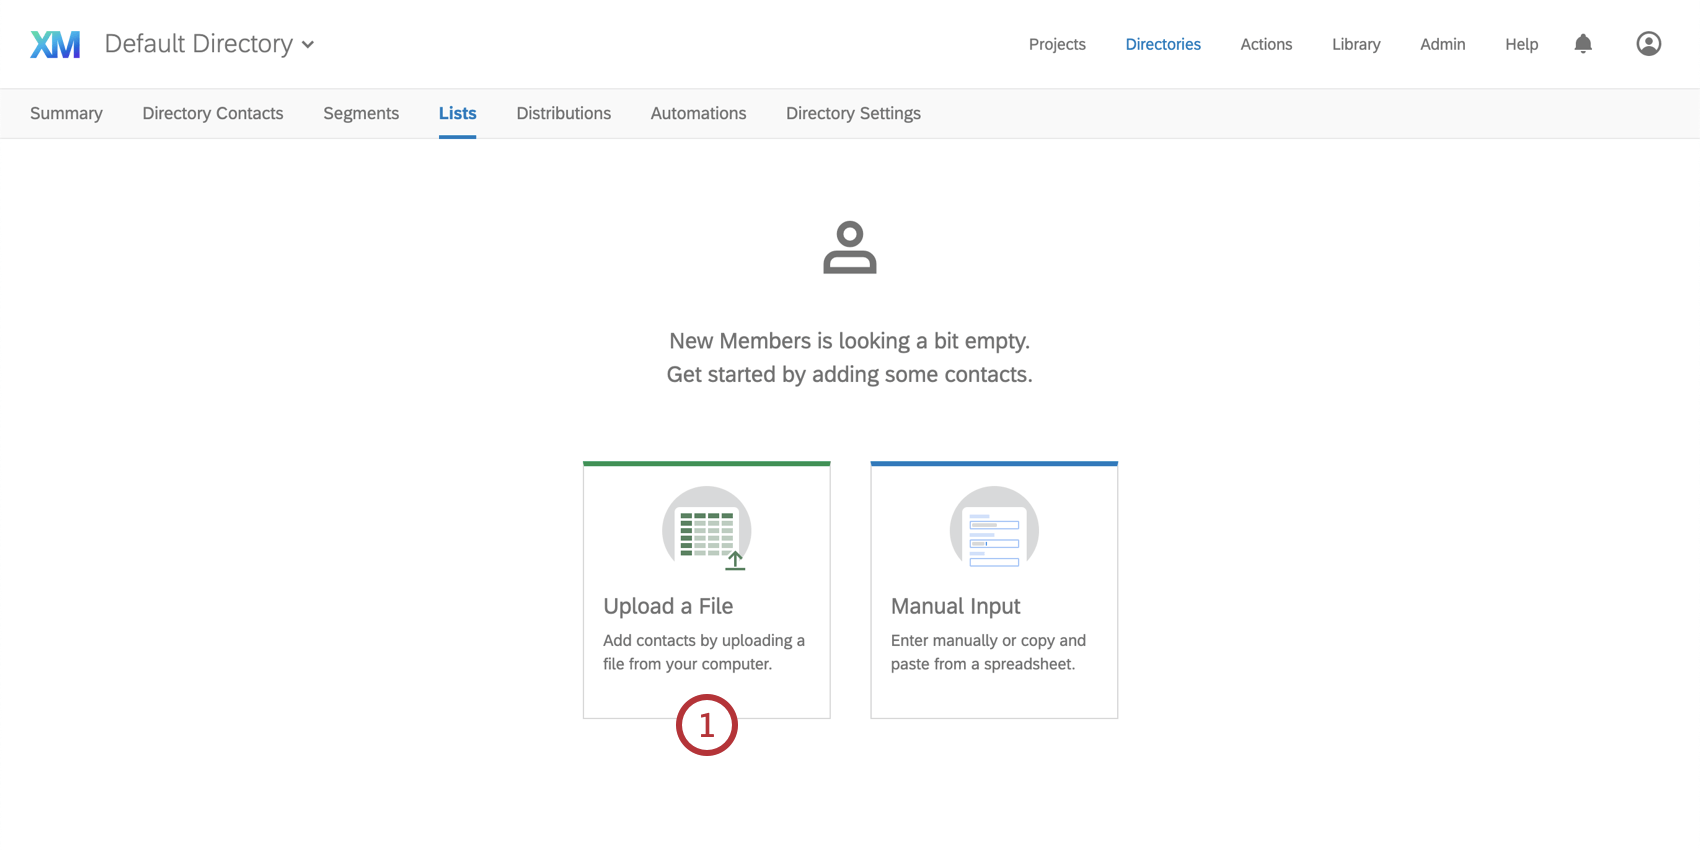 Upload a file button in the center of the page